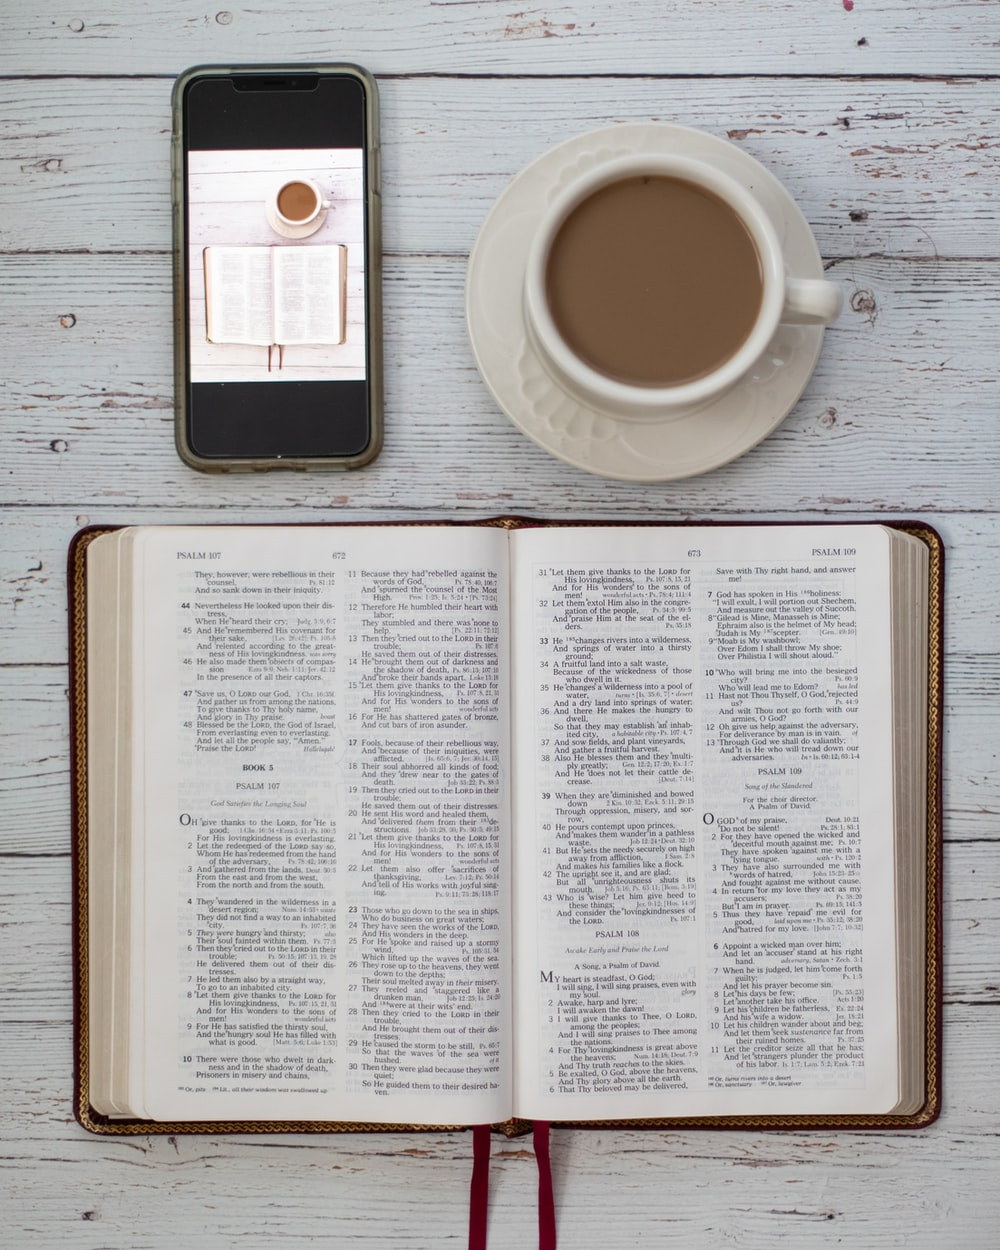 opened bible beside cup of coffee and smartphone on table